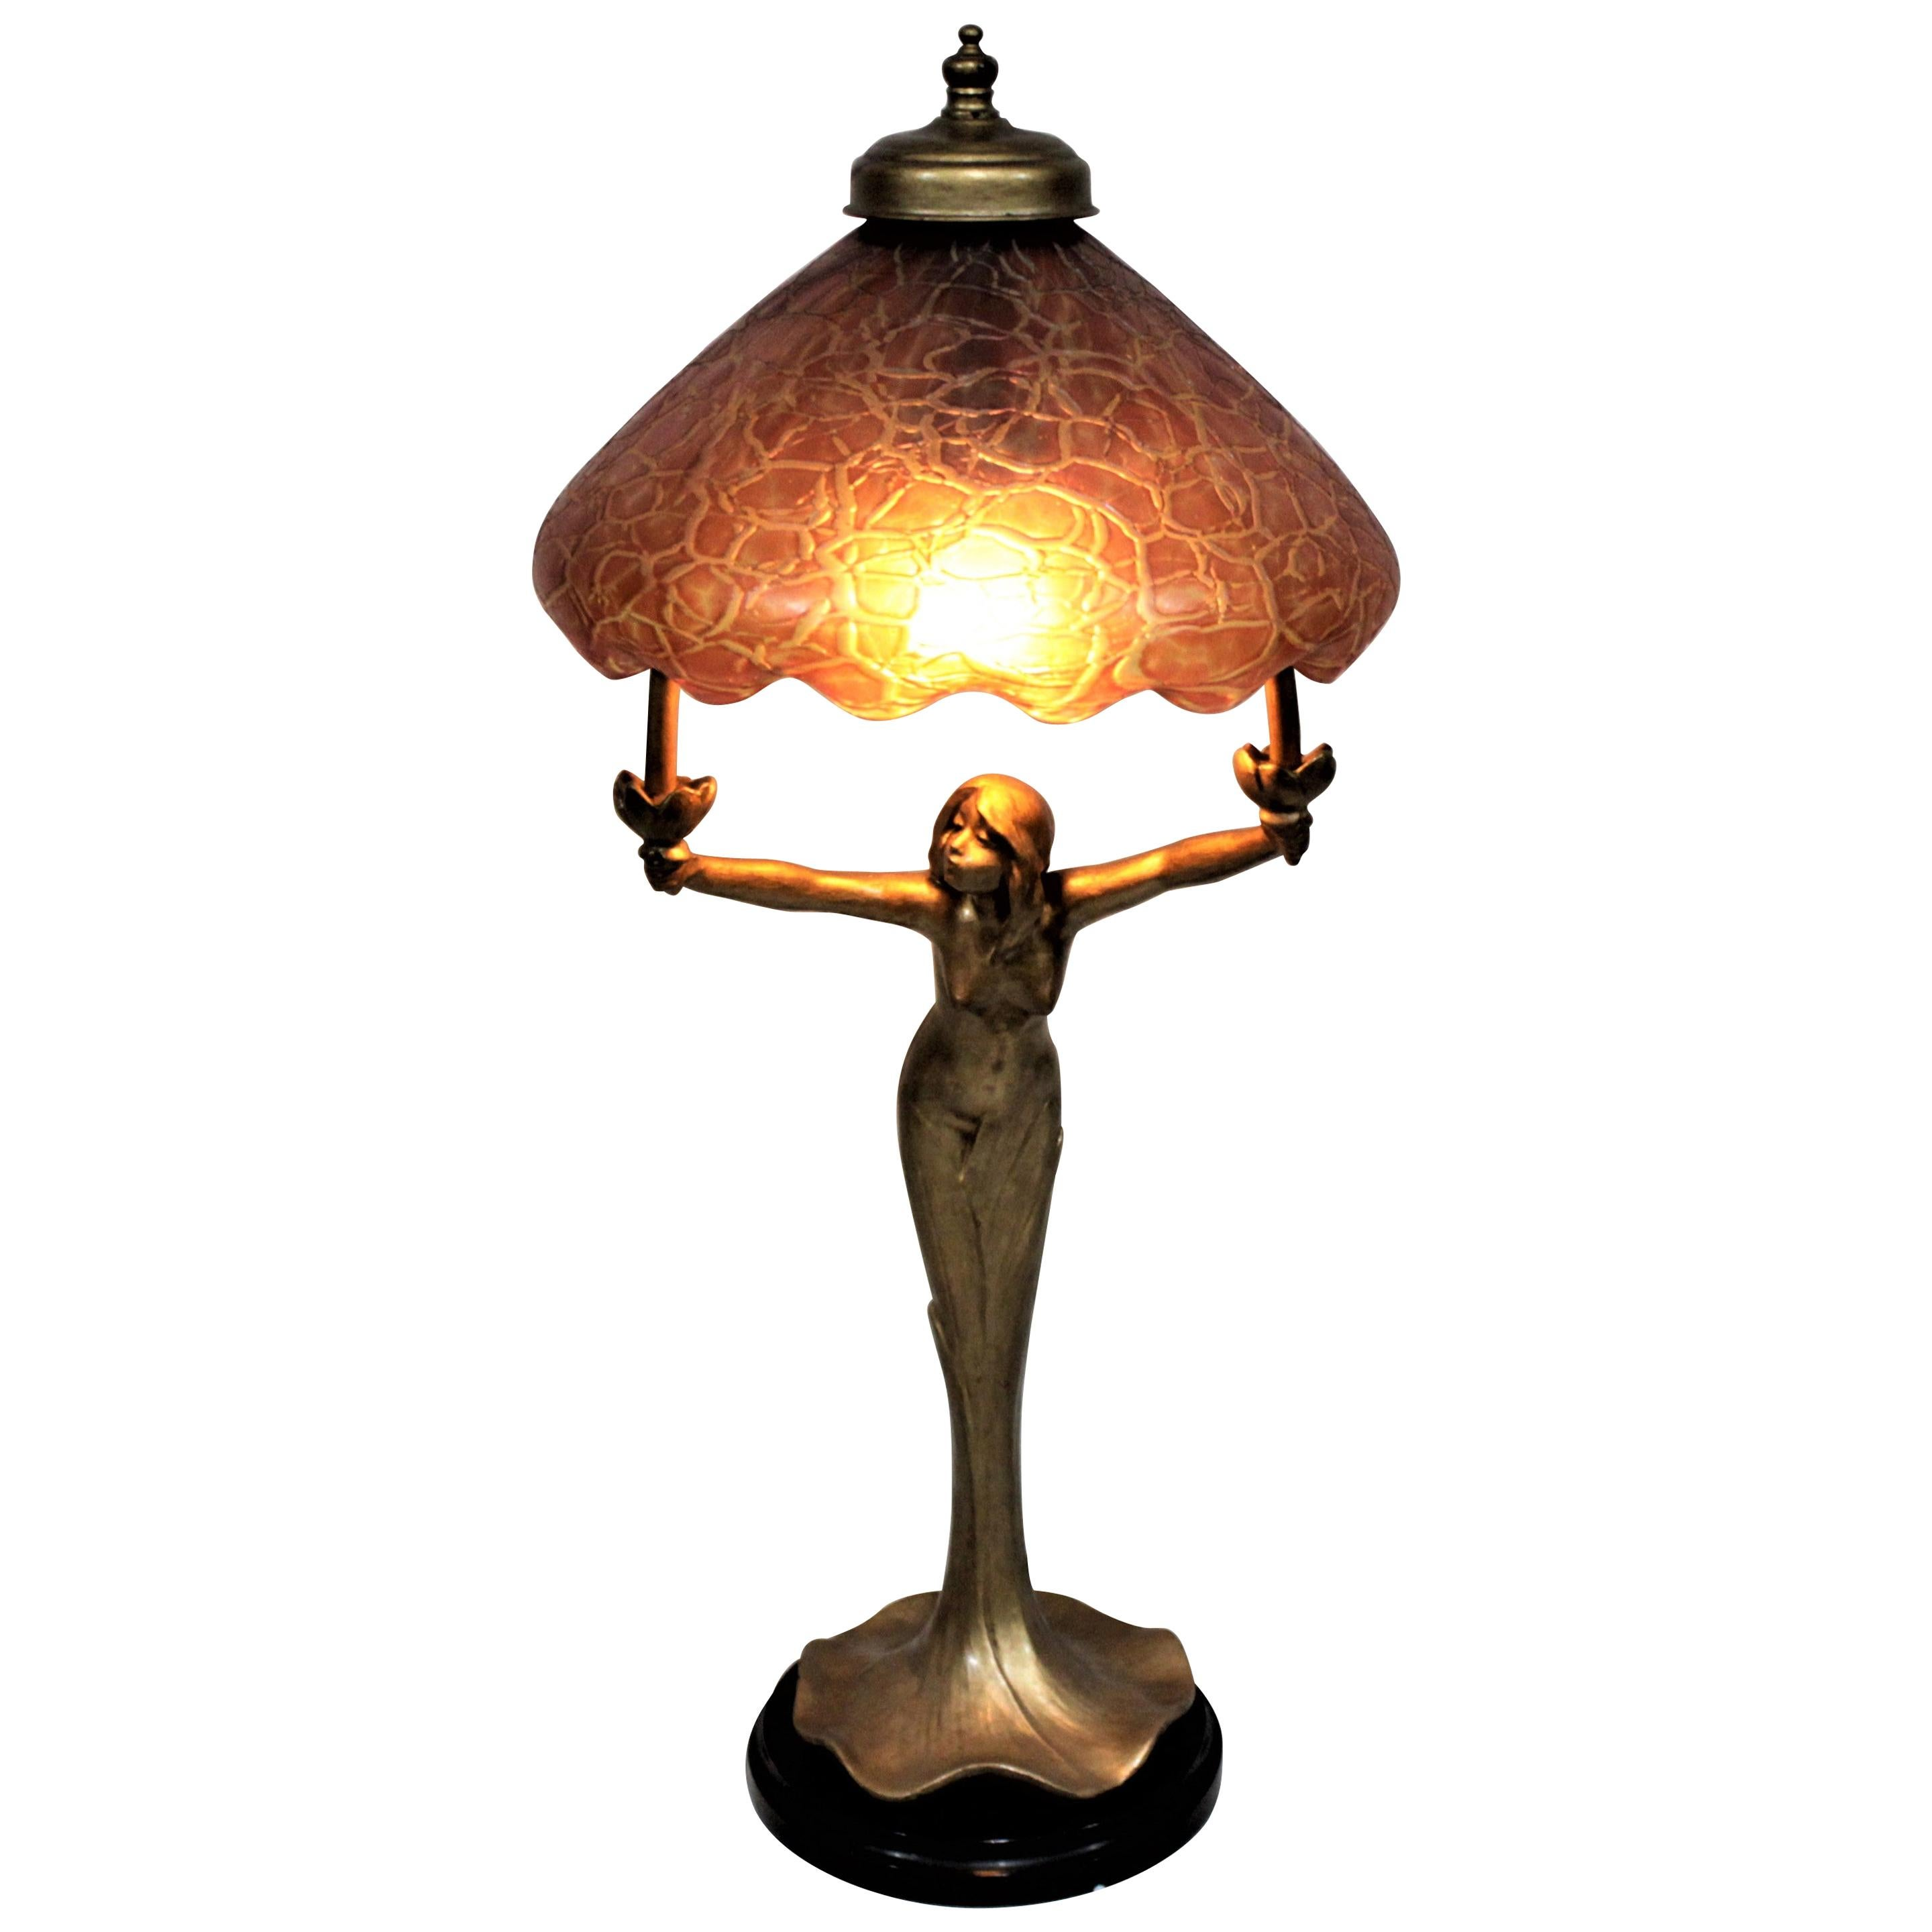 Antique Art Nouveau Figural Young Female Table Lamp With An Art Glass Shade For Sale At 1stdibs